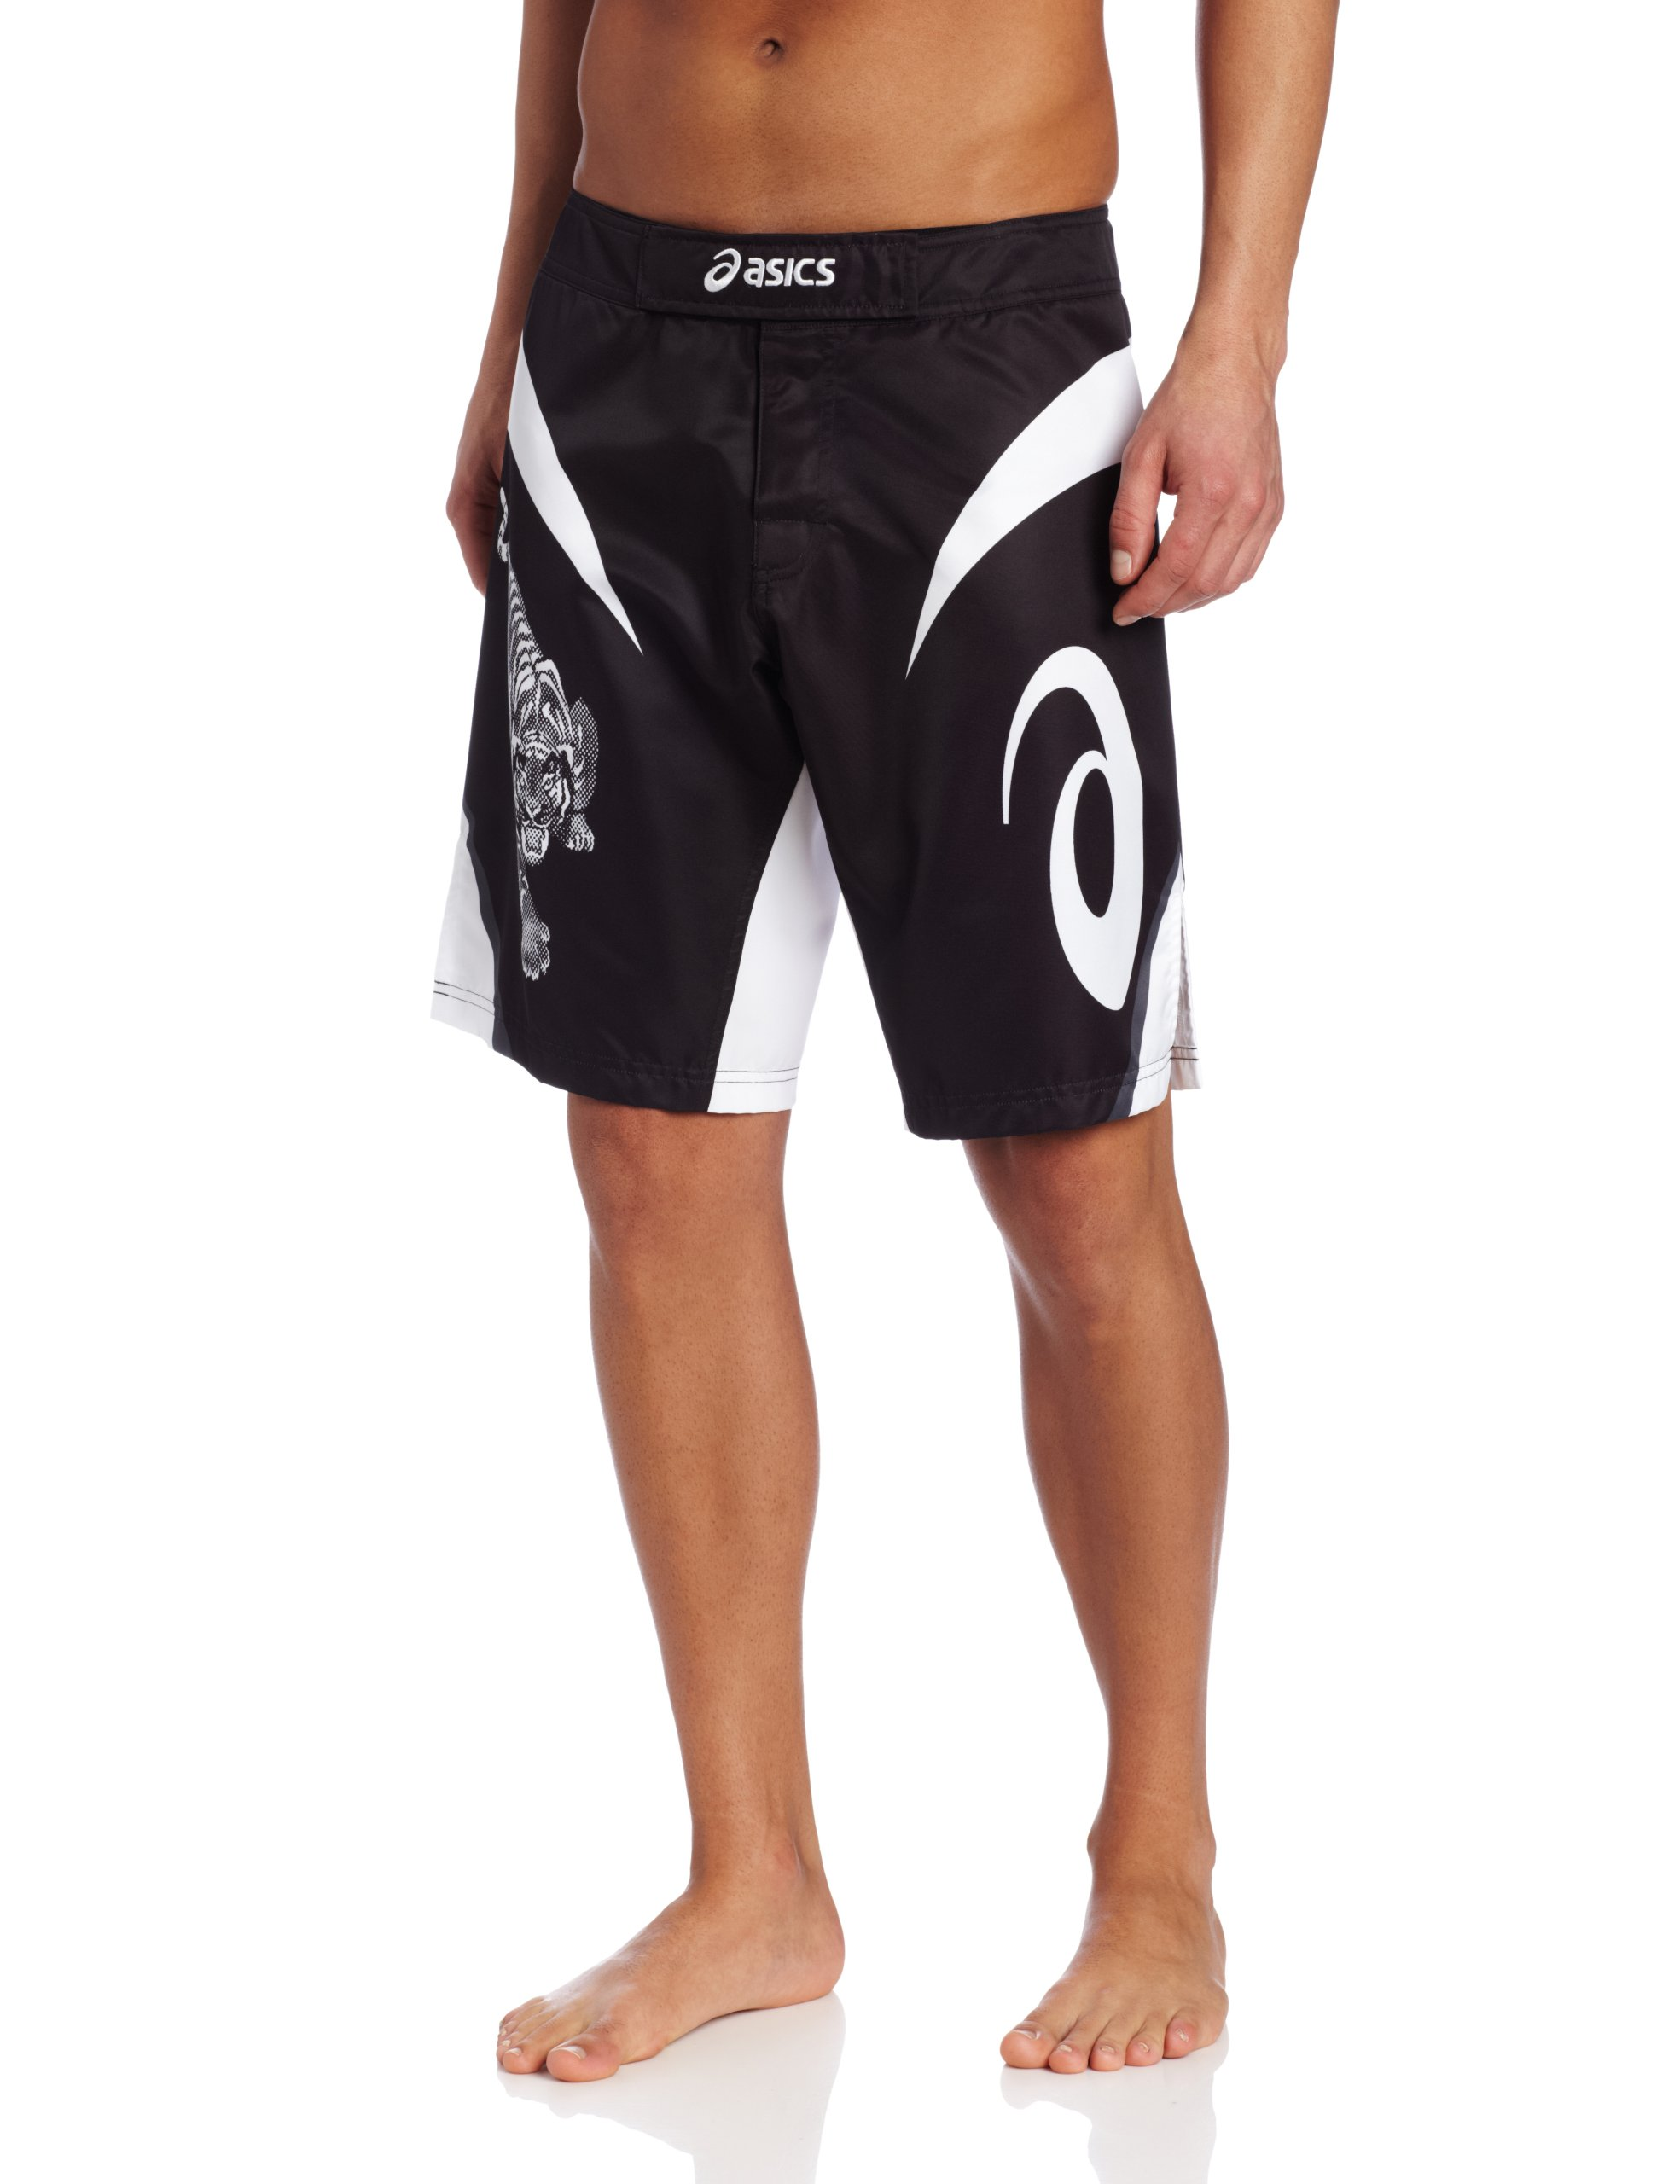 Asics Men's Bull Short, Black/White, 30 by ASICS